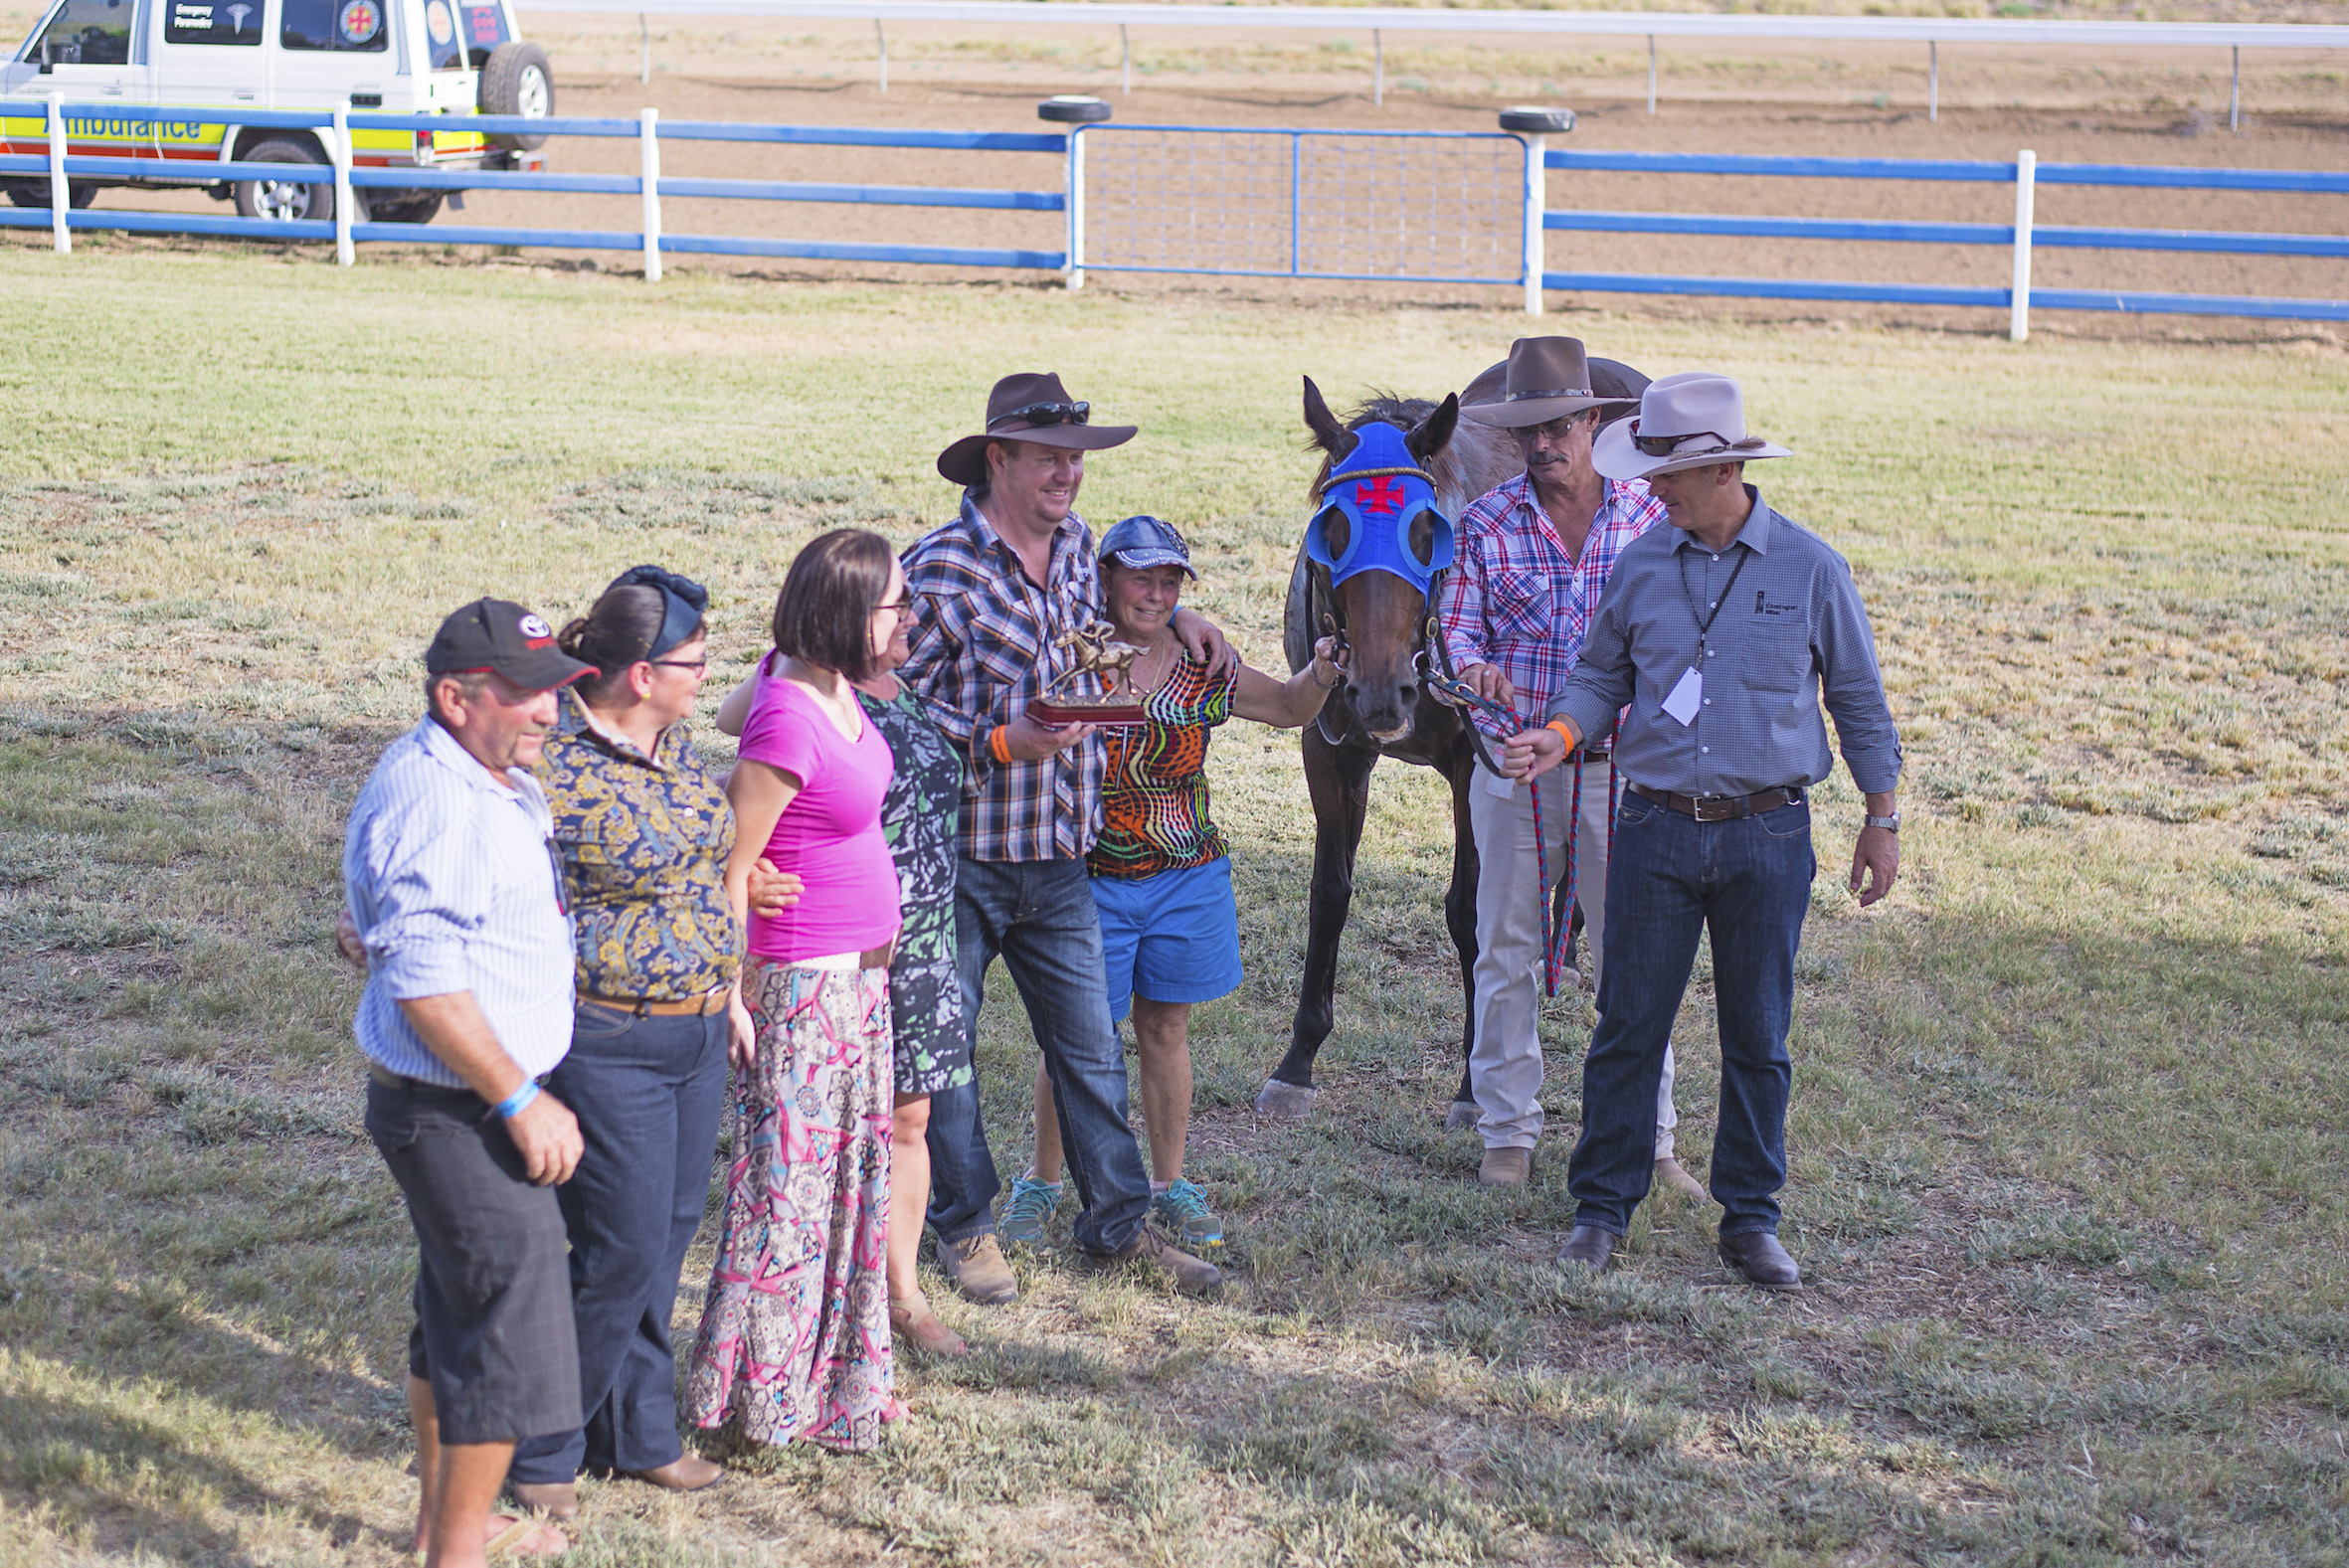 Denise and her team celebrating their win at the Julia Creek Races 2015